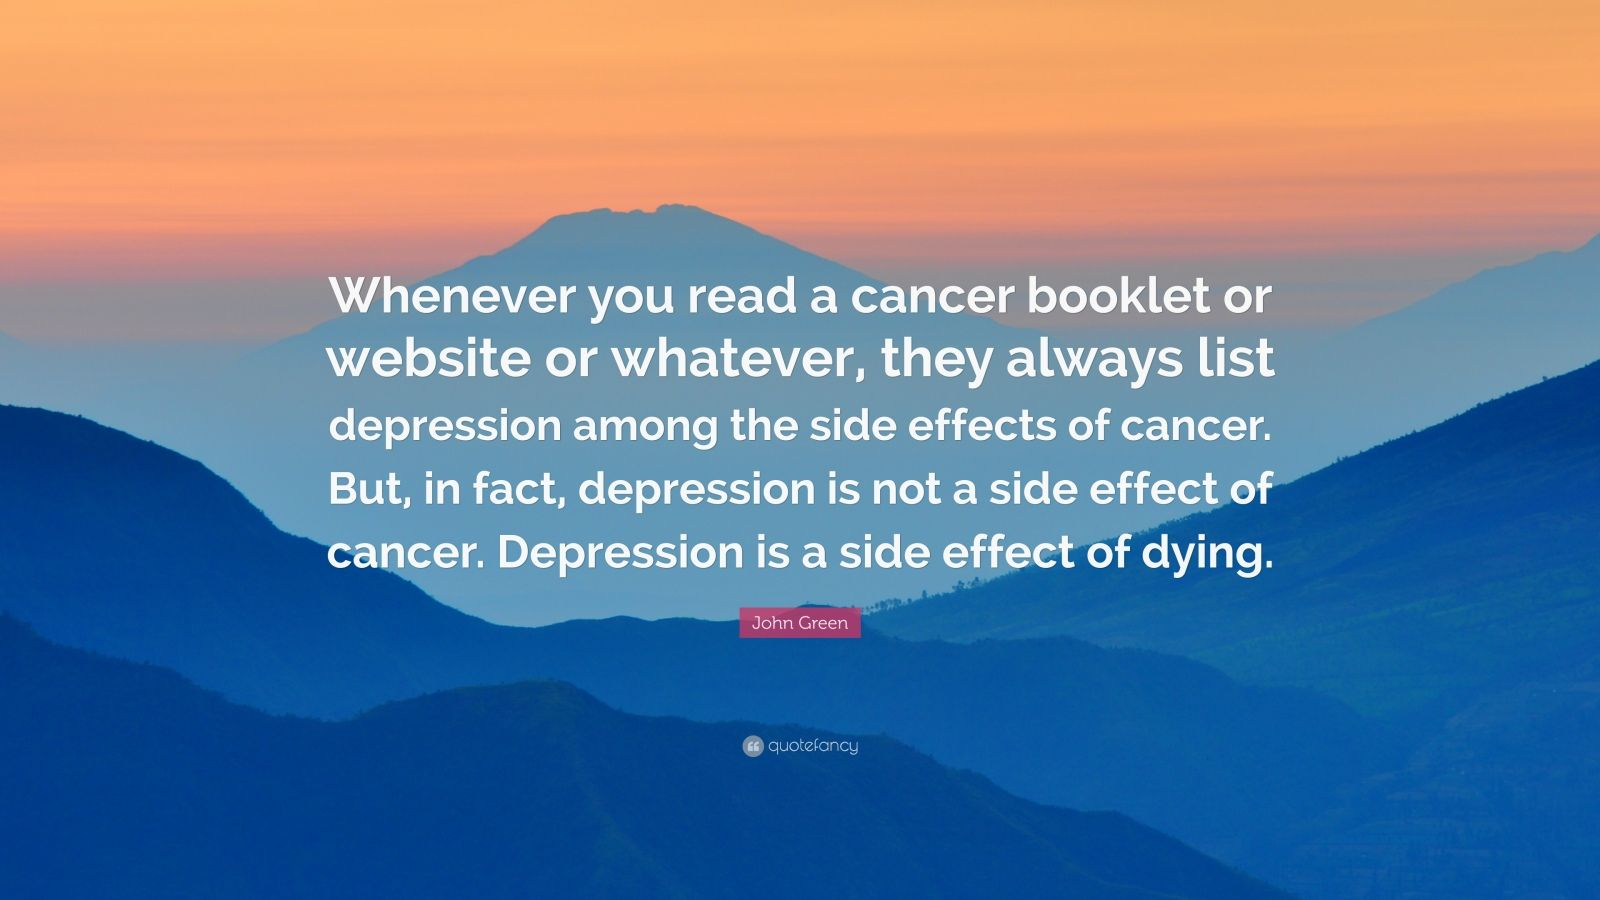 """John Green Quote: """"Whenever you read a cancer booklet or website or whatever, they always list depression among the side effects of cancer. But, in fact, depression is not a side effect of cancer. Depression is a side effect of dying."""""""